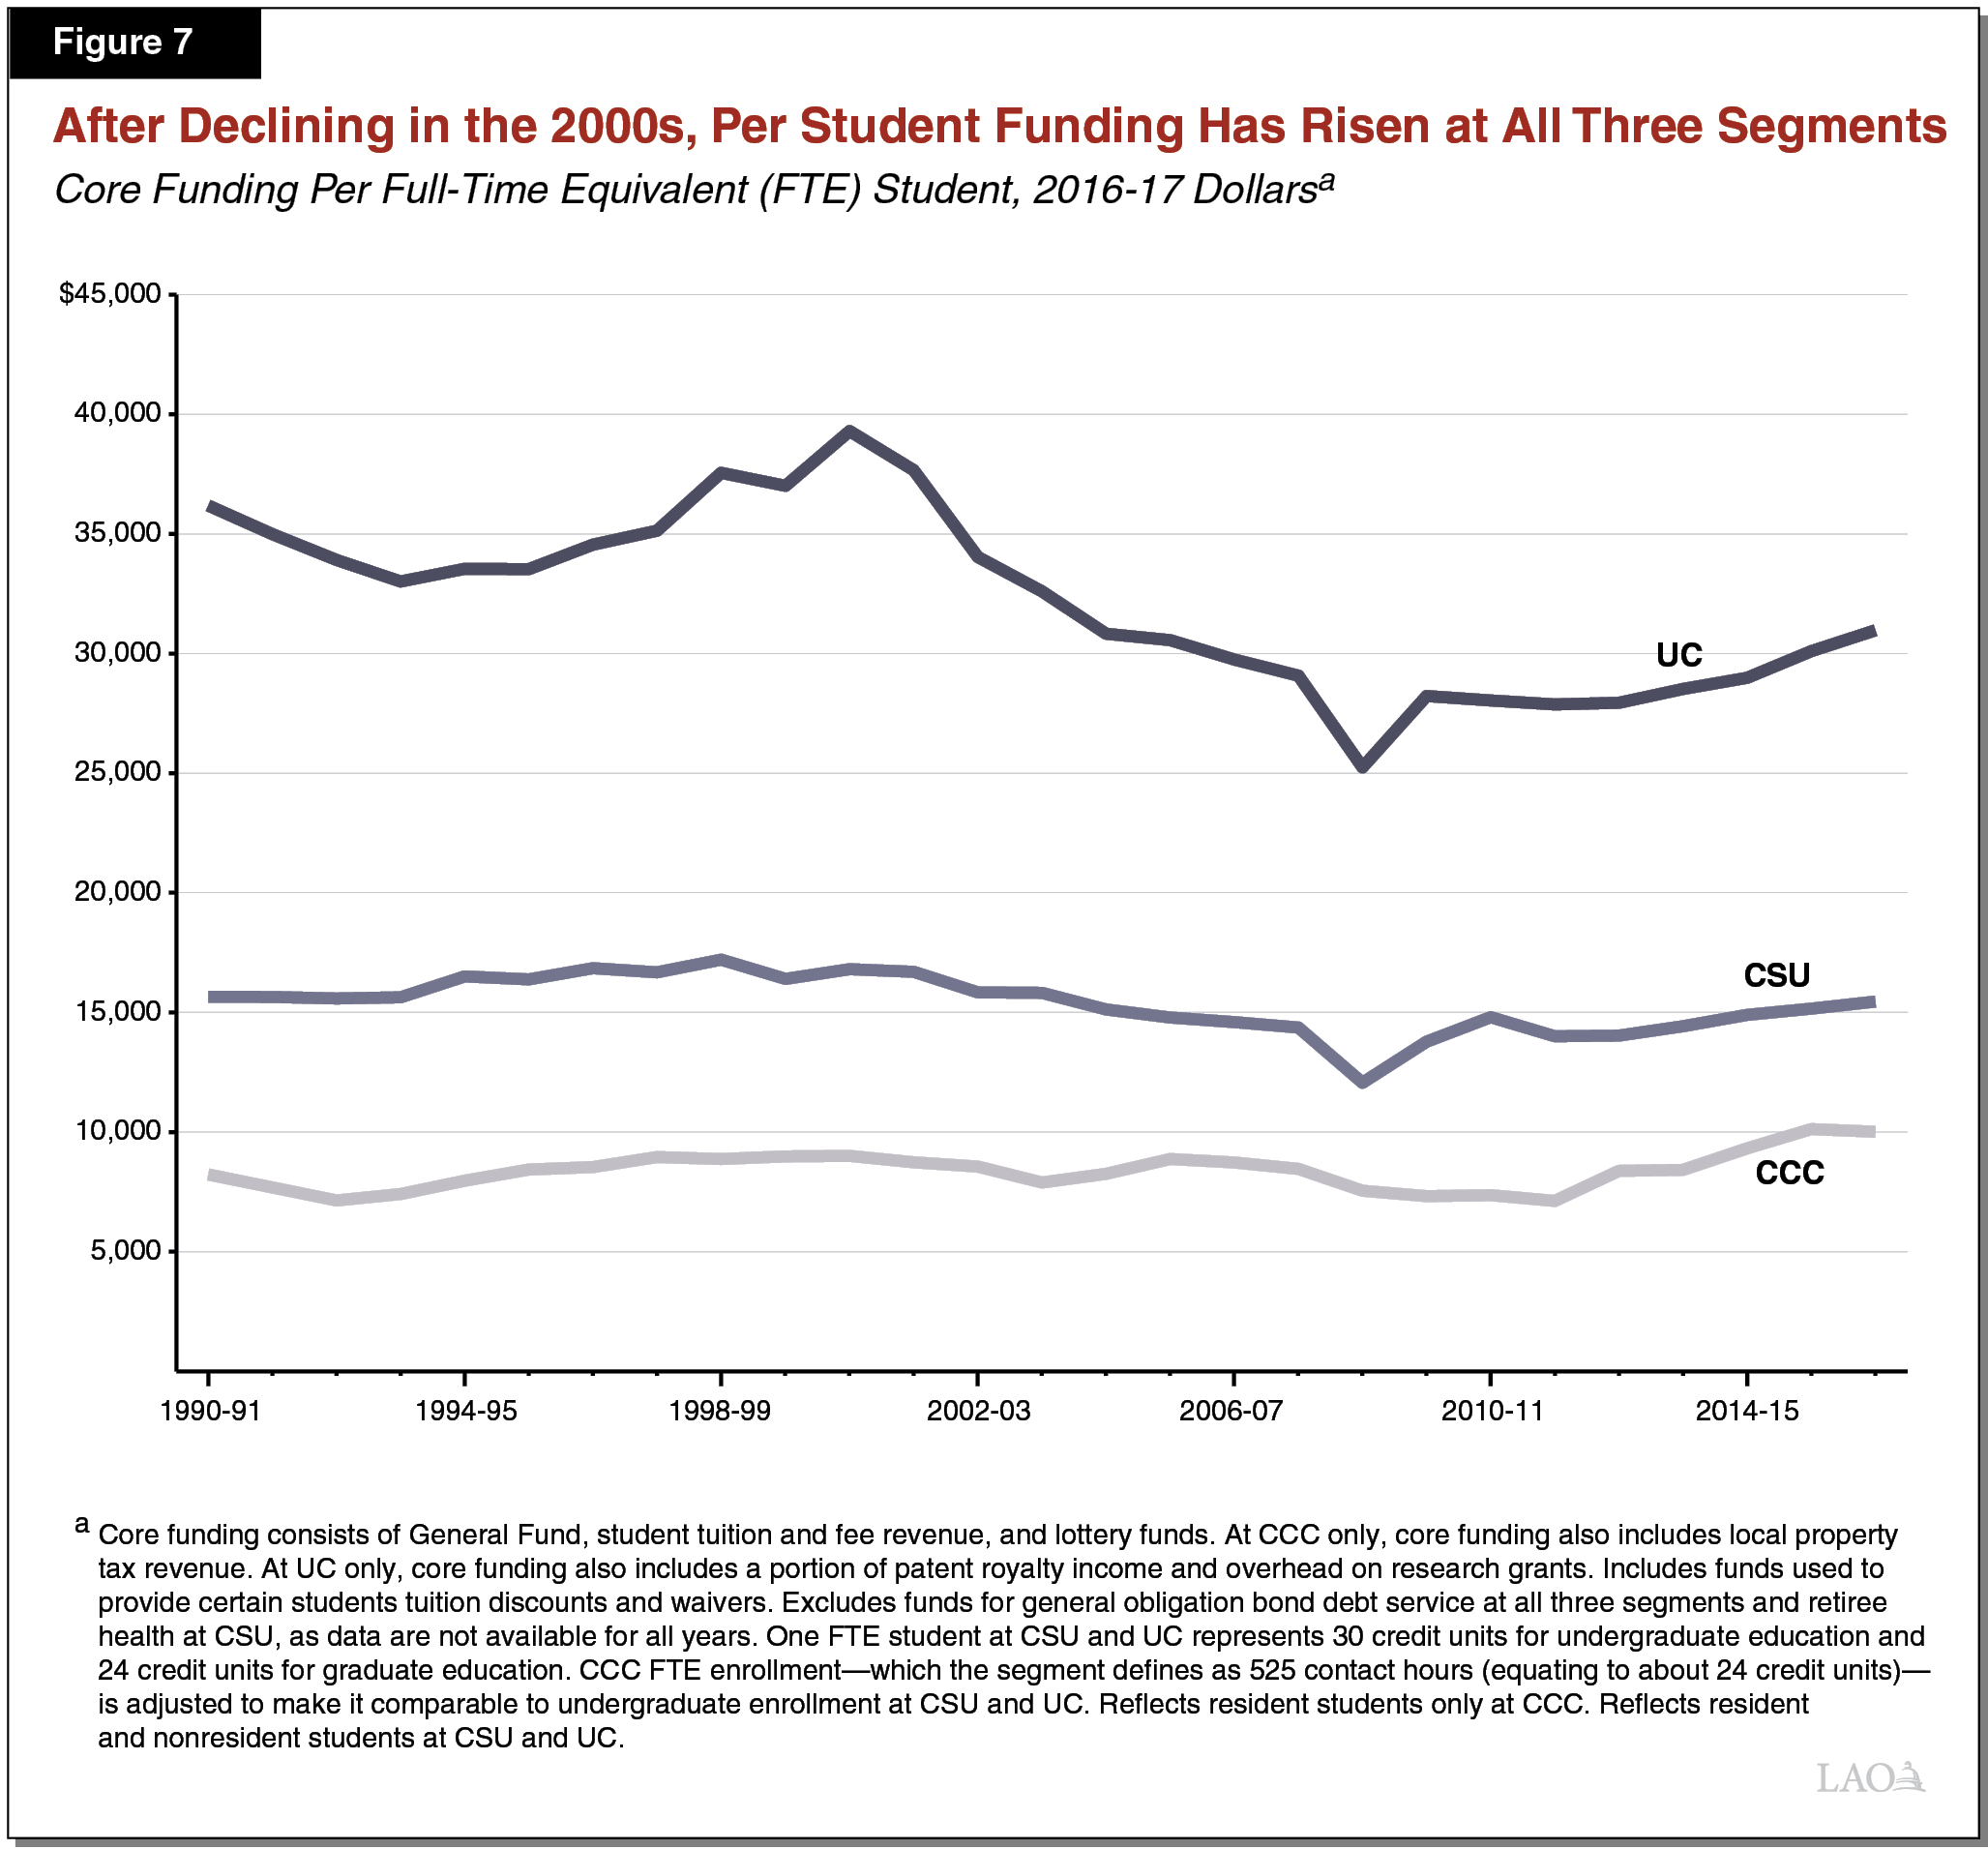 Figure 7 - After Declining in the 2000s, Per Student Funding Has Risen at All Three Segments